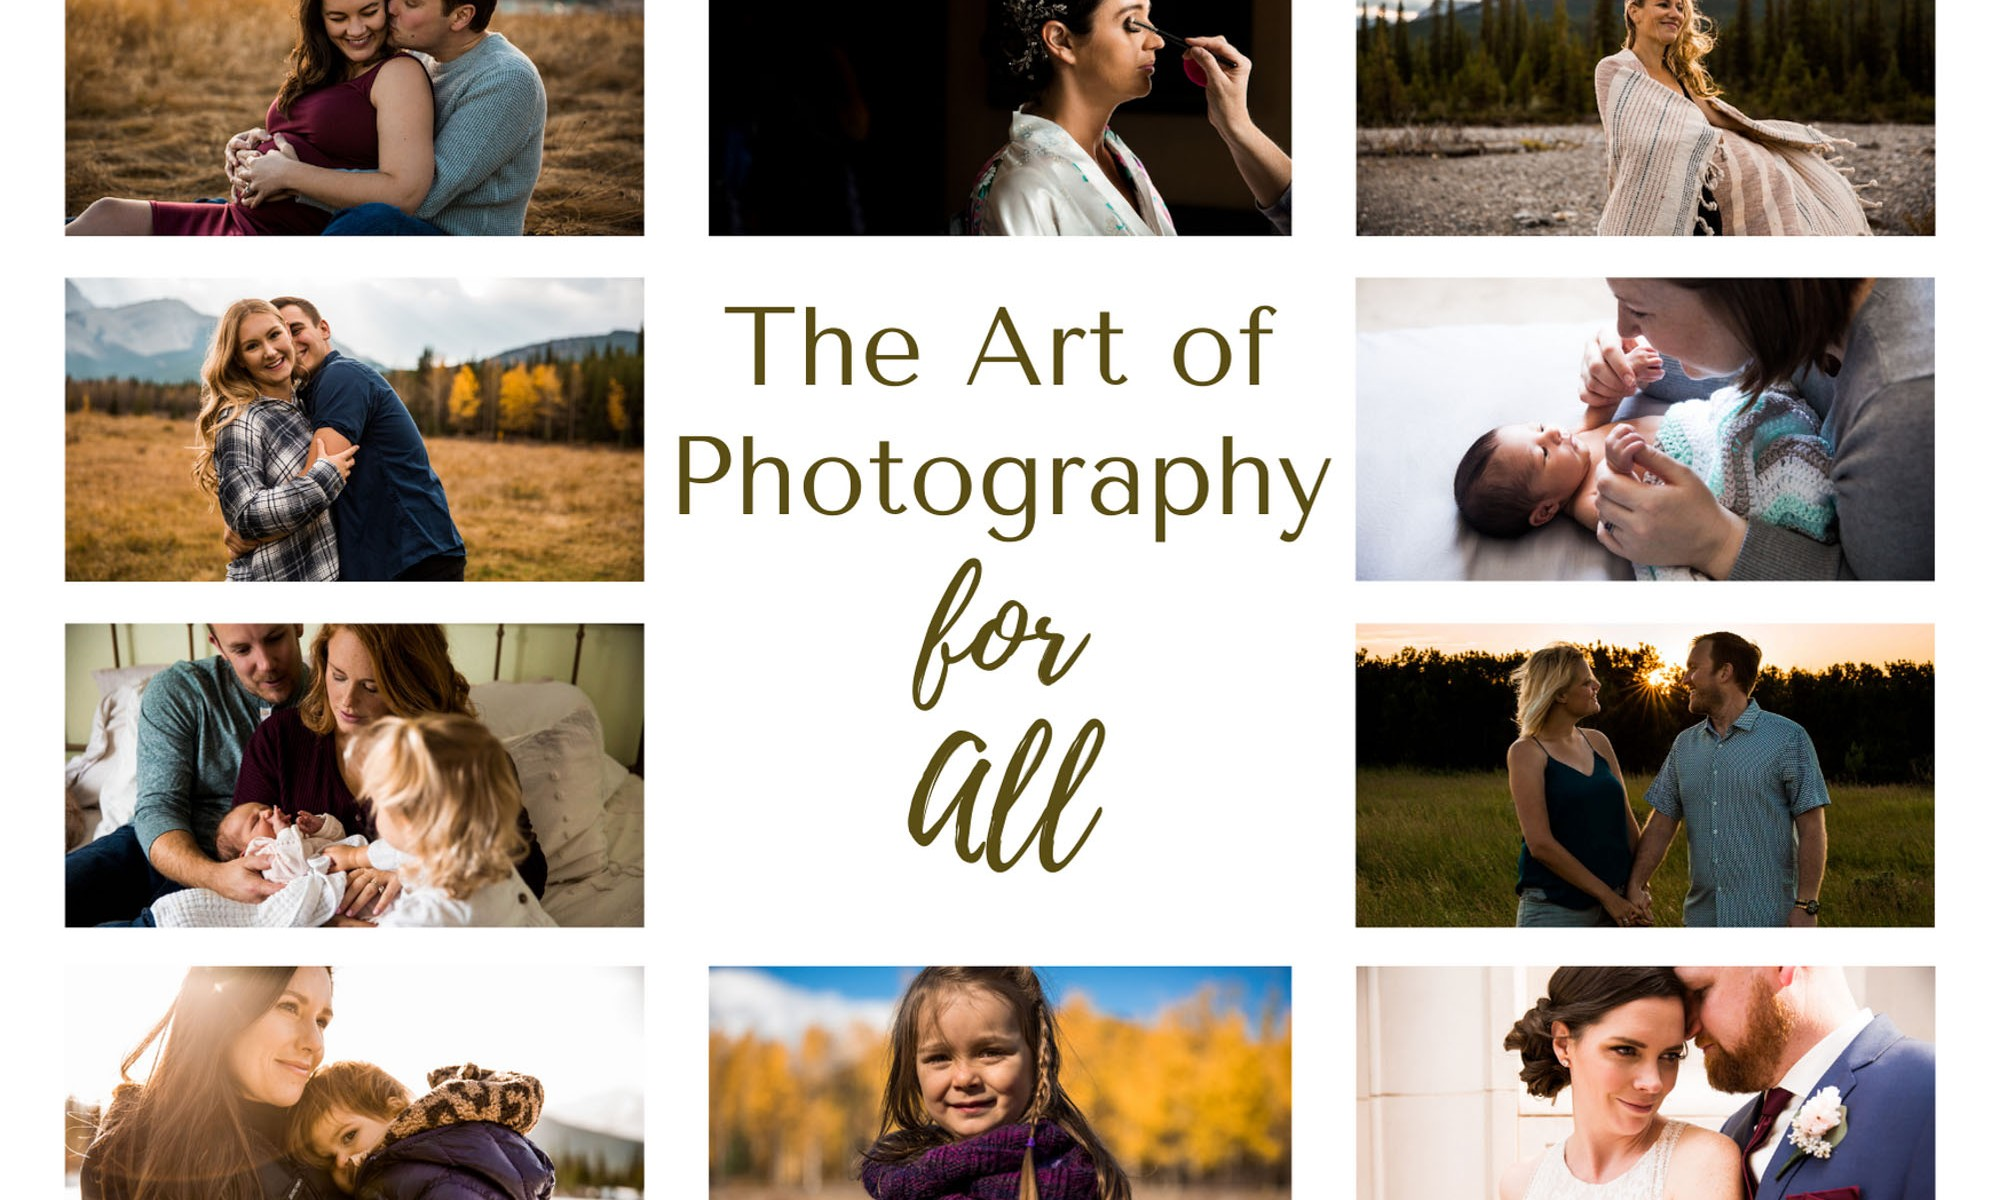 Learning photography for beginners, basic photography techniques